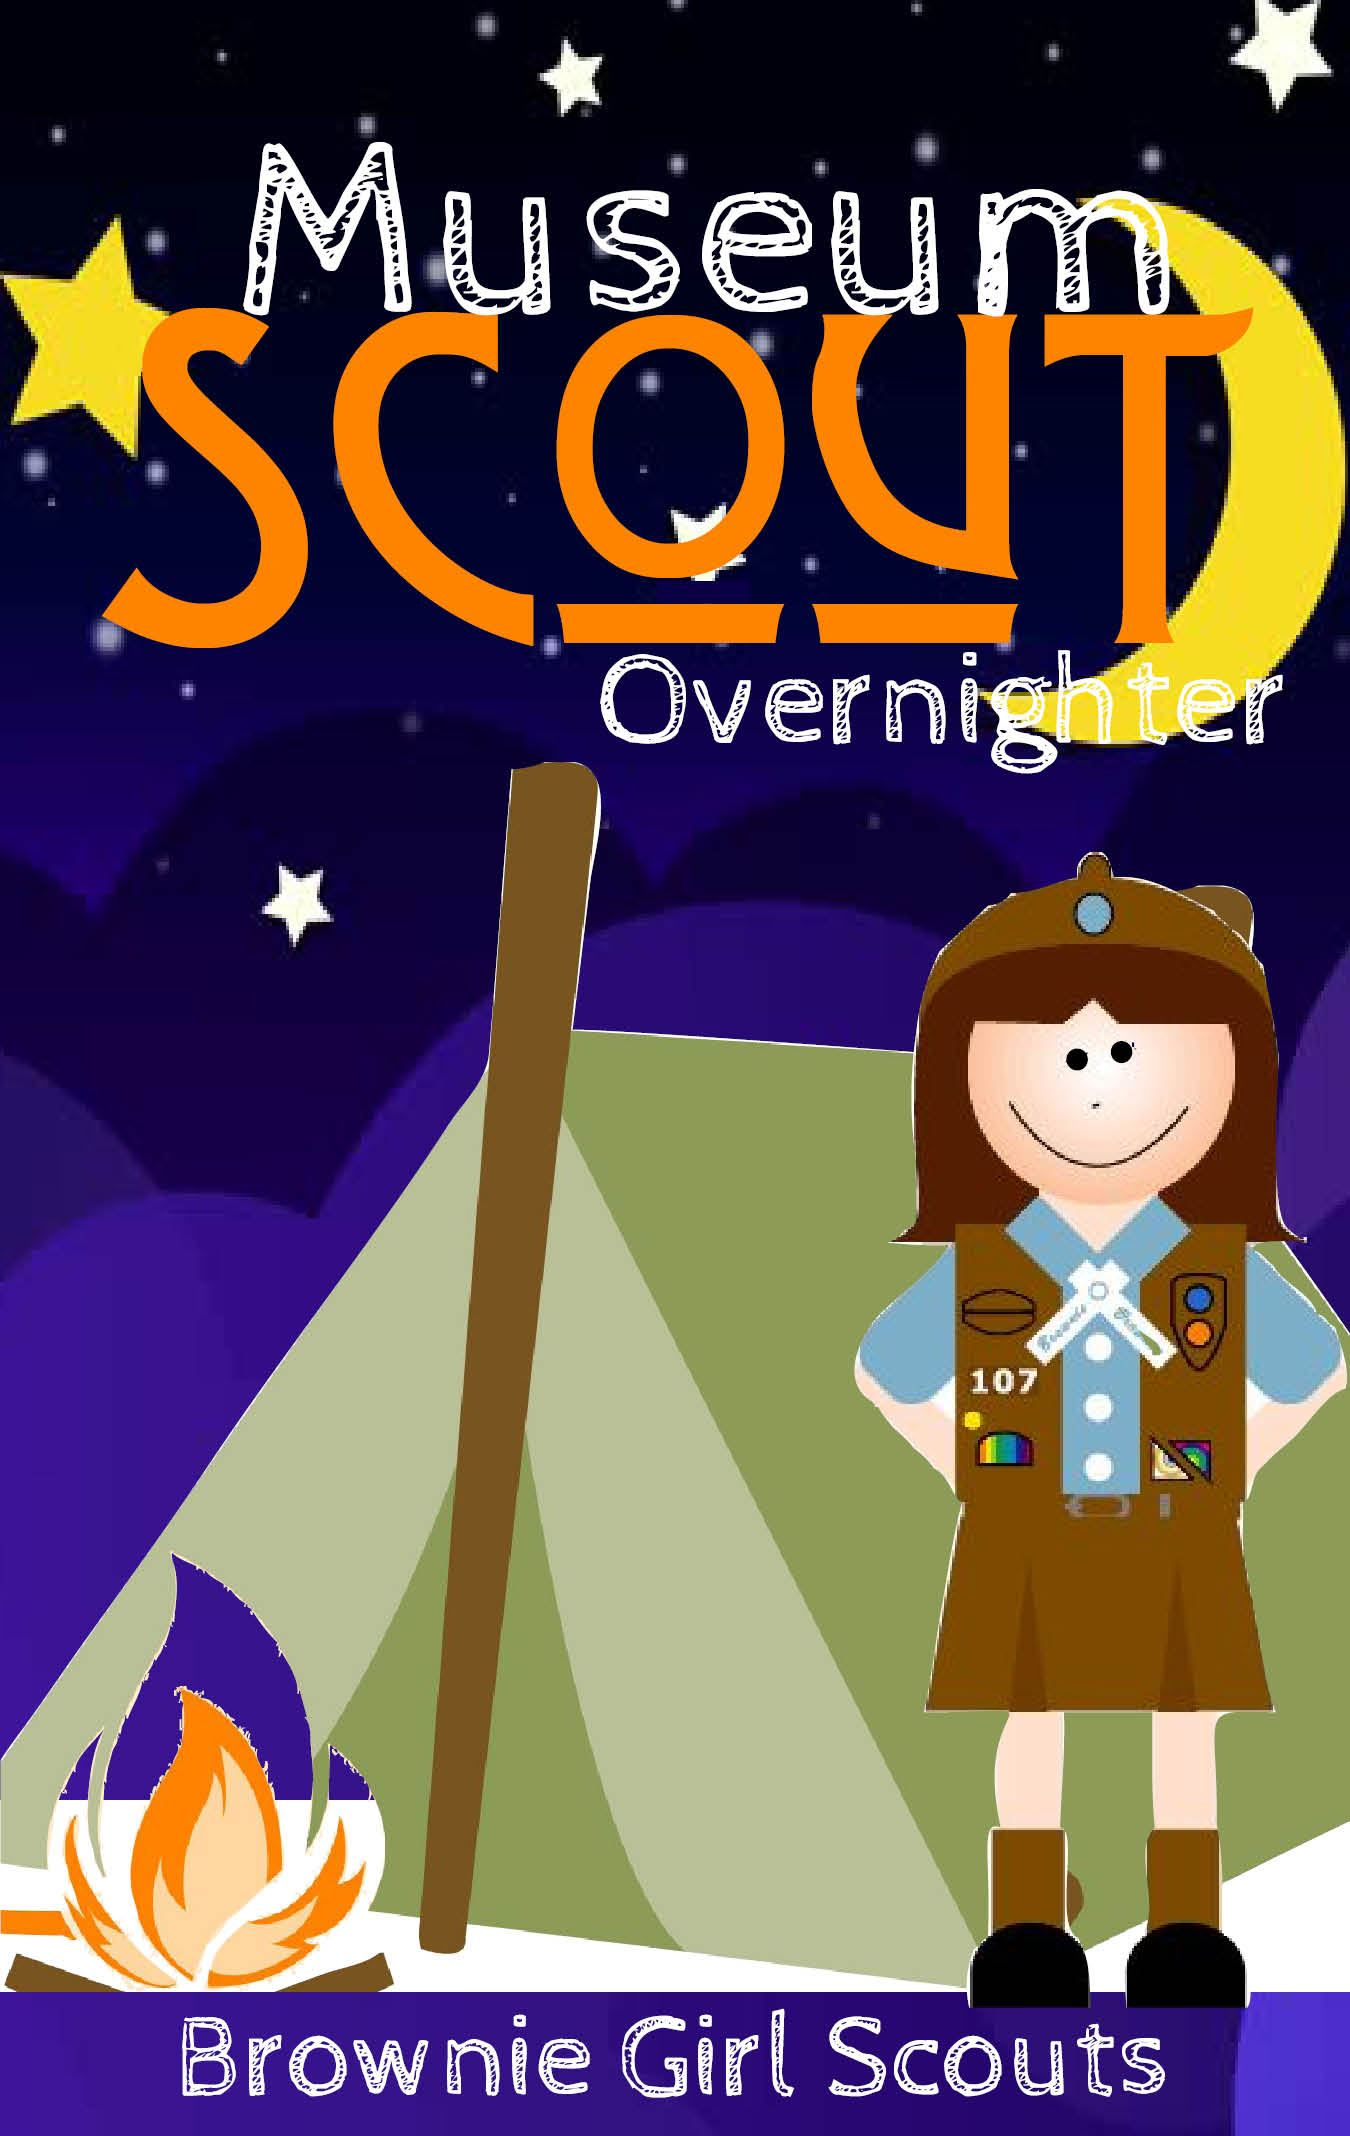 girlscout overnight 20